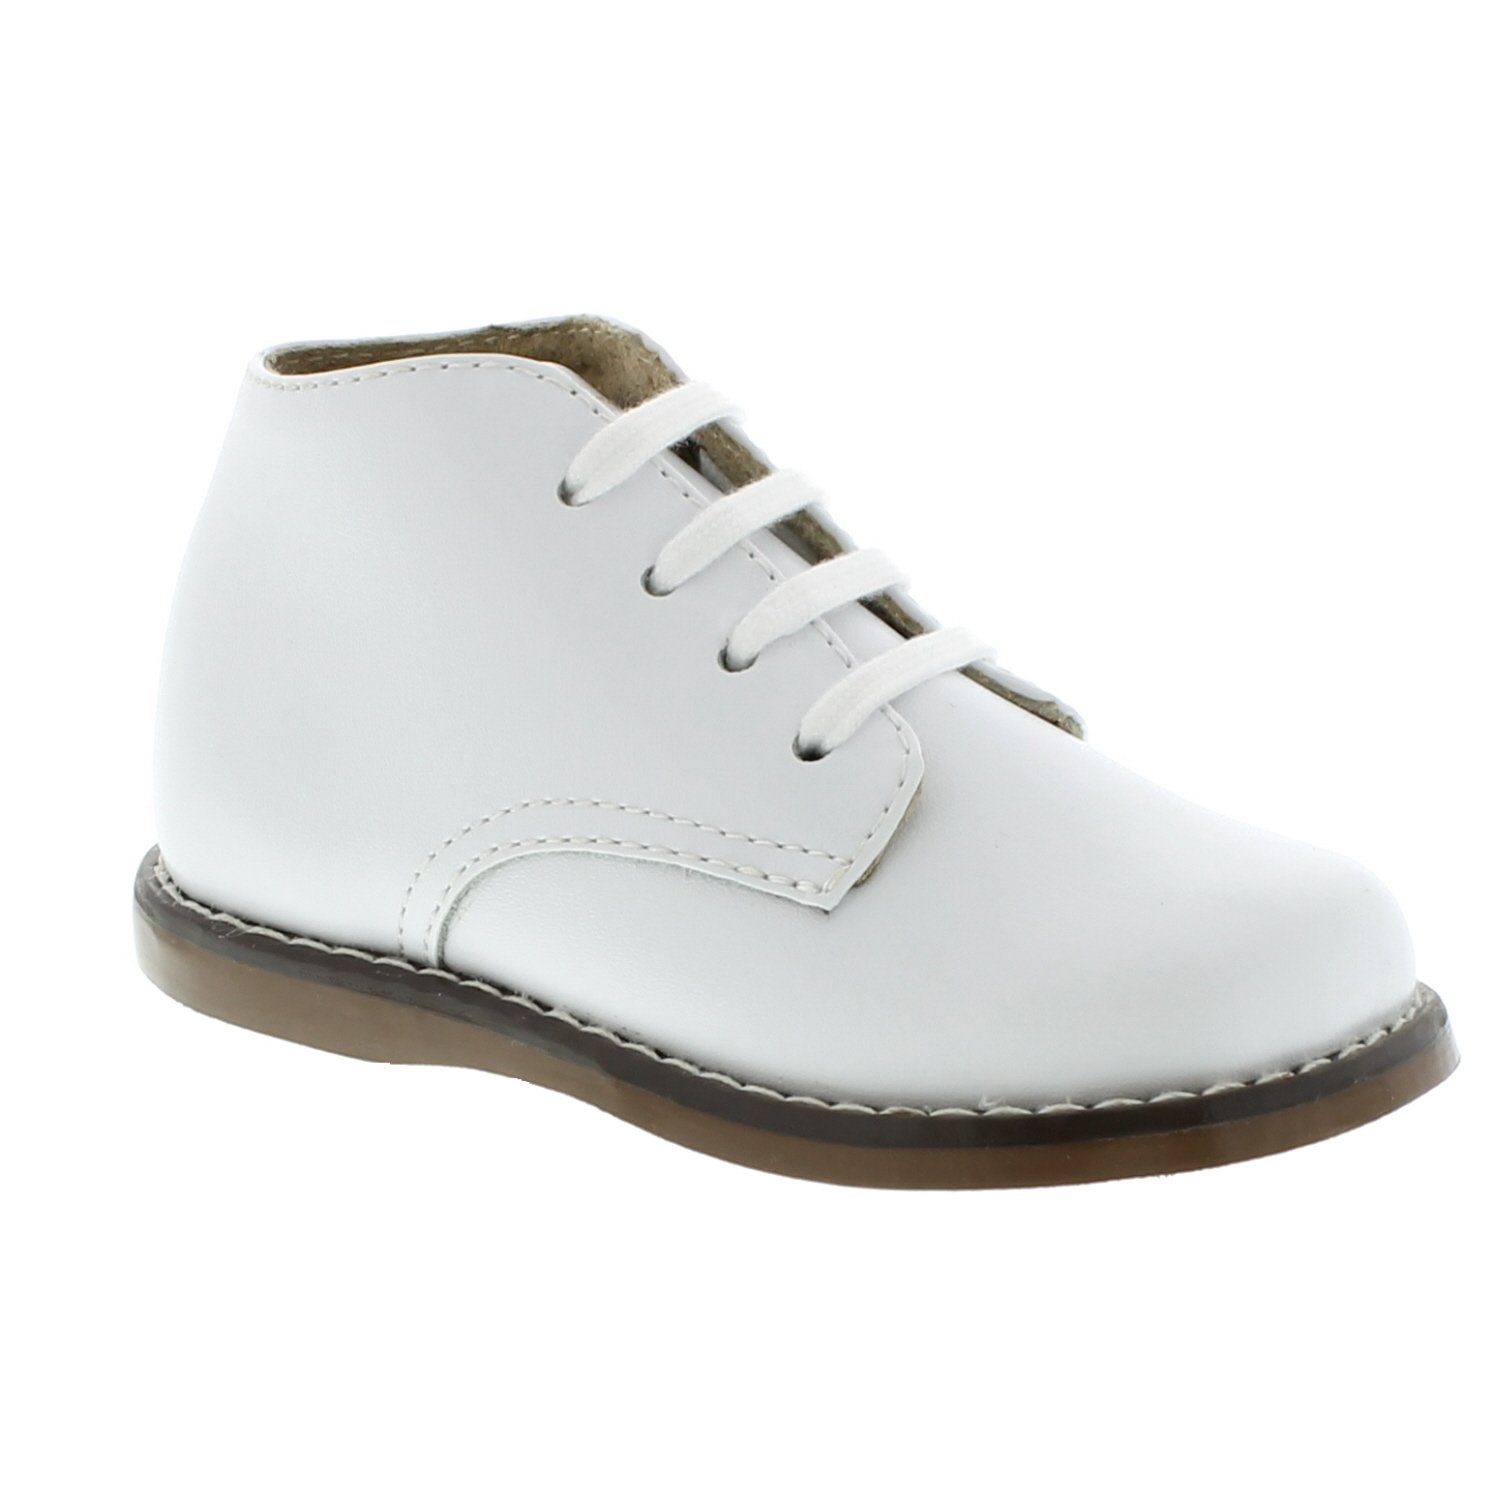 FootMates Unisex Todd 3 (Infant/Toddler) White Oxford 4 Toddler M/W by FOOTMATES (Image #3)